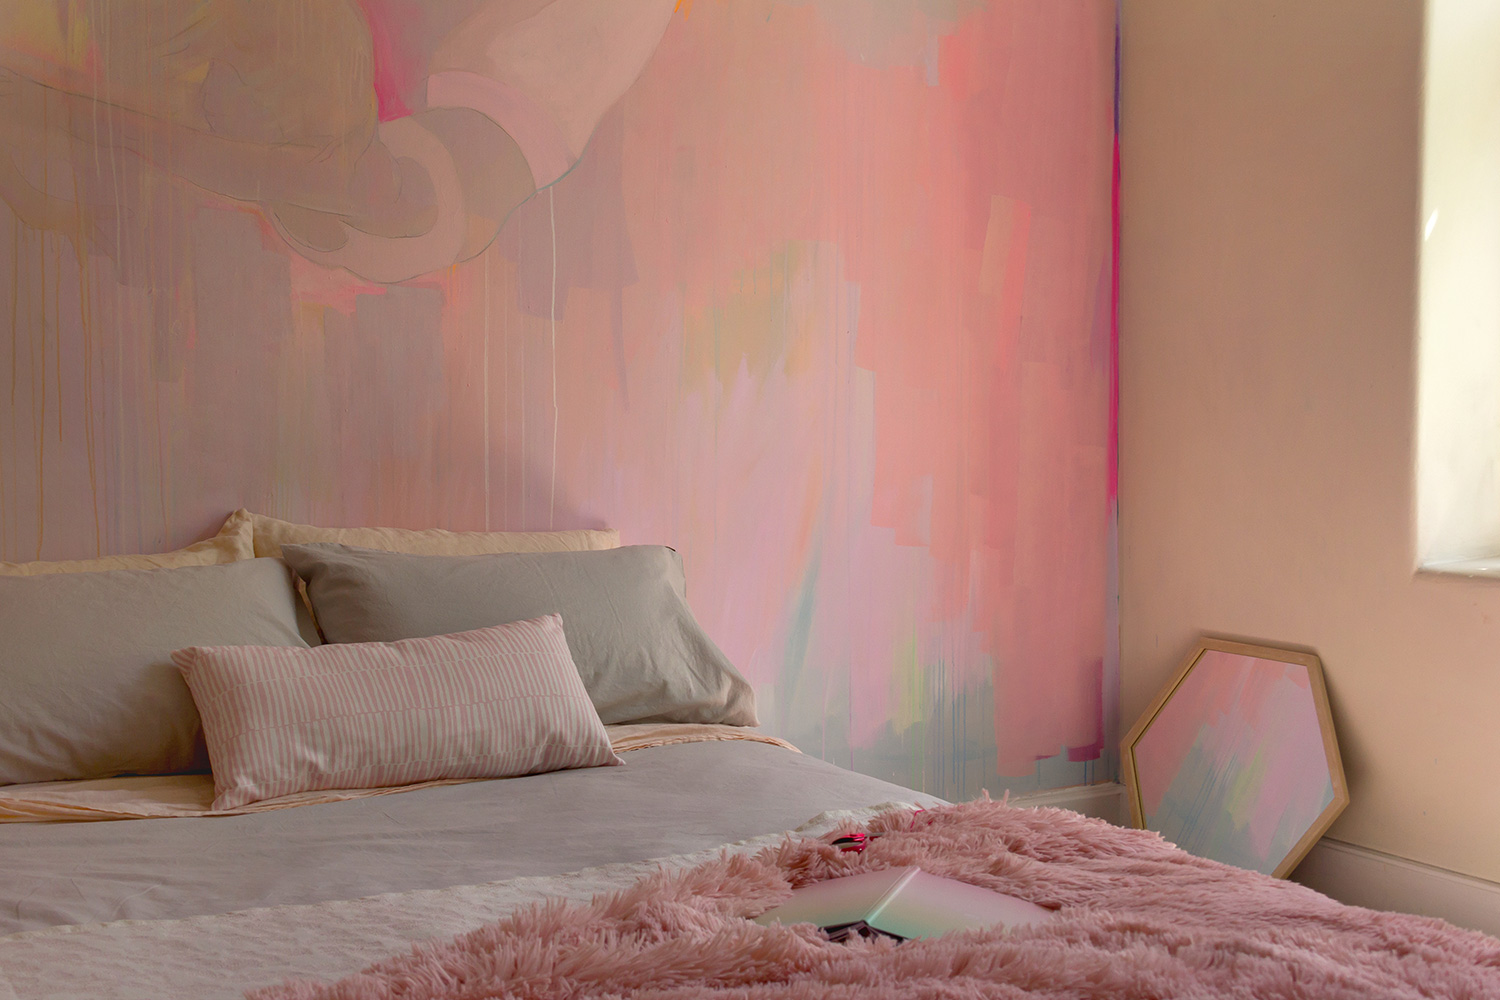 Modern abstract bedroom mural features splashes of pastel paint and pops of neon color, the bedroom glows with afternoon light.